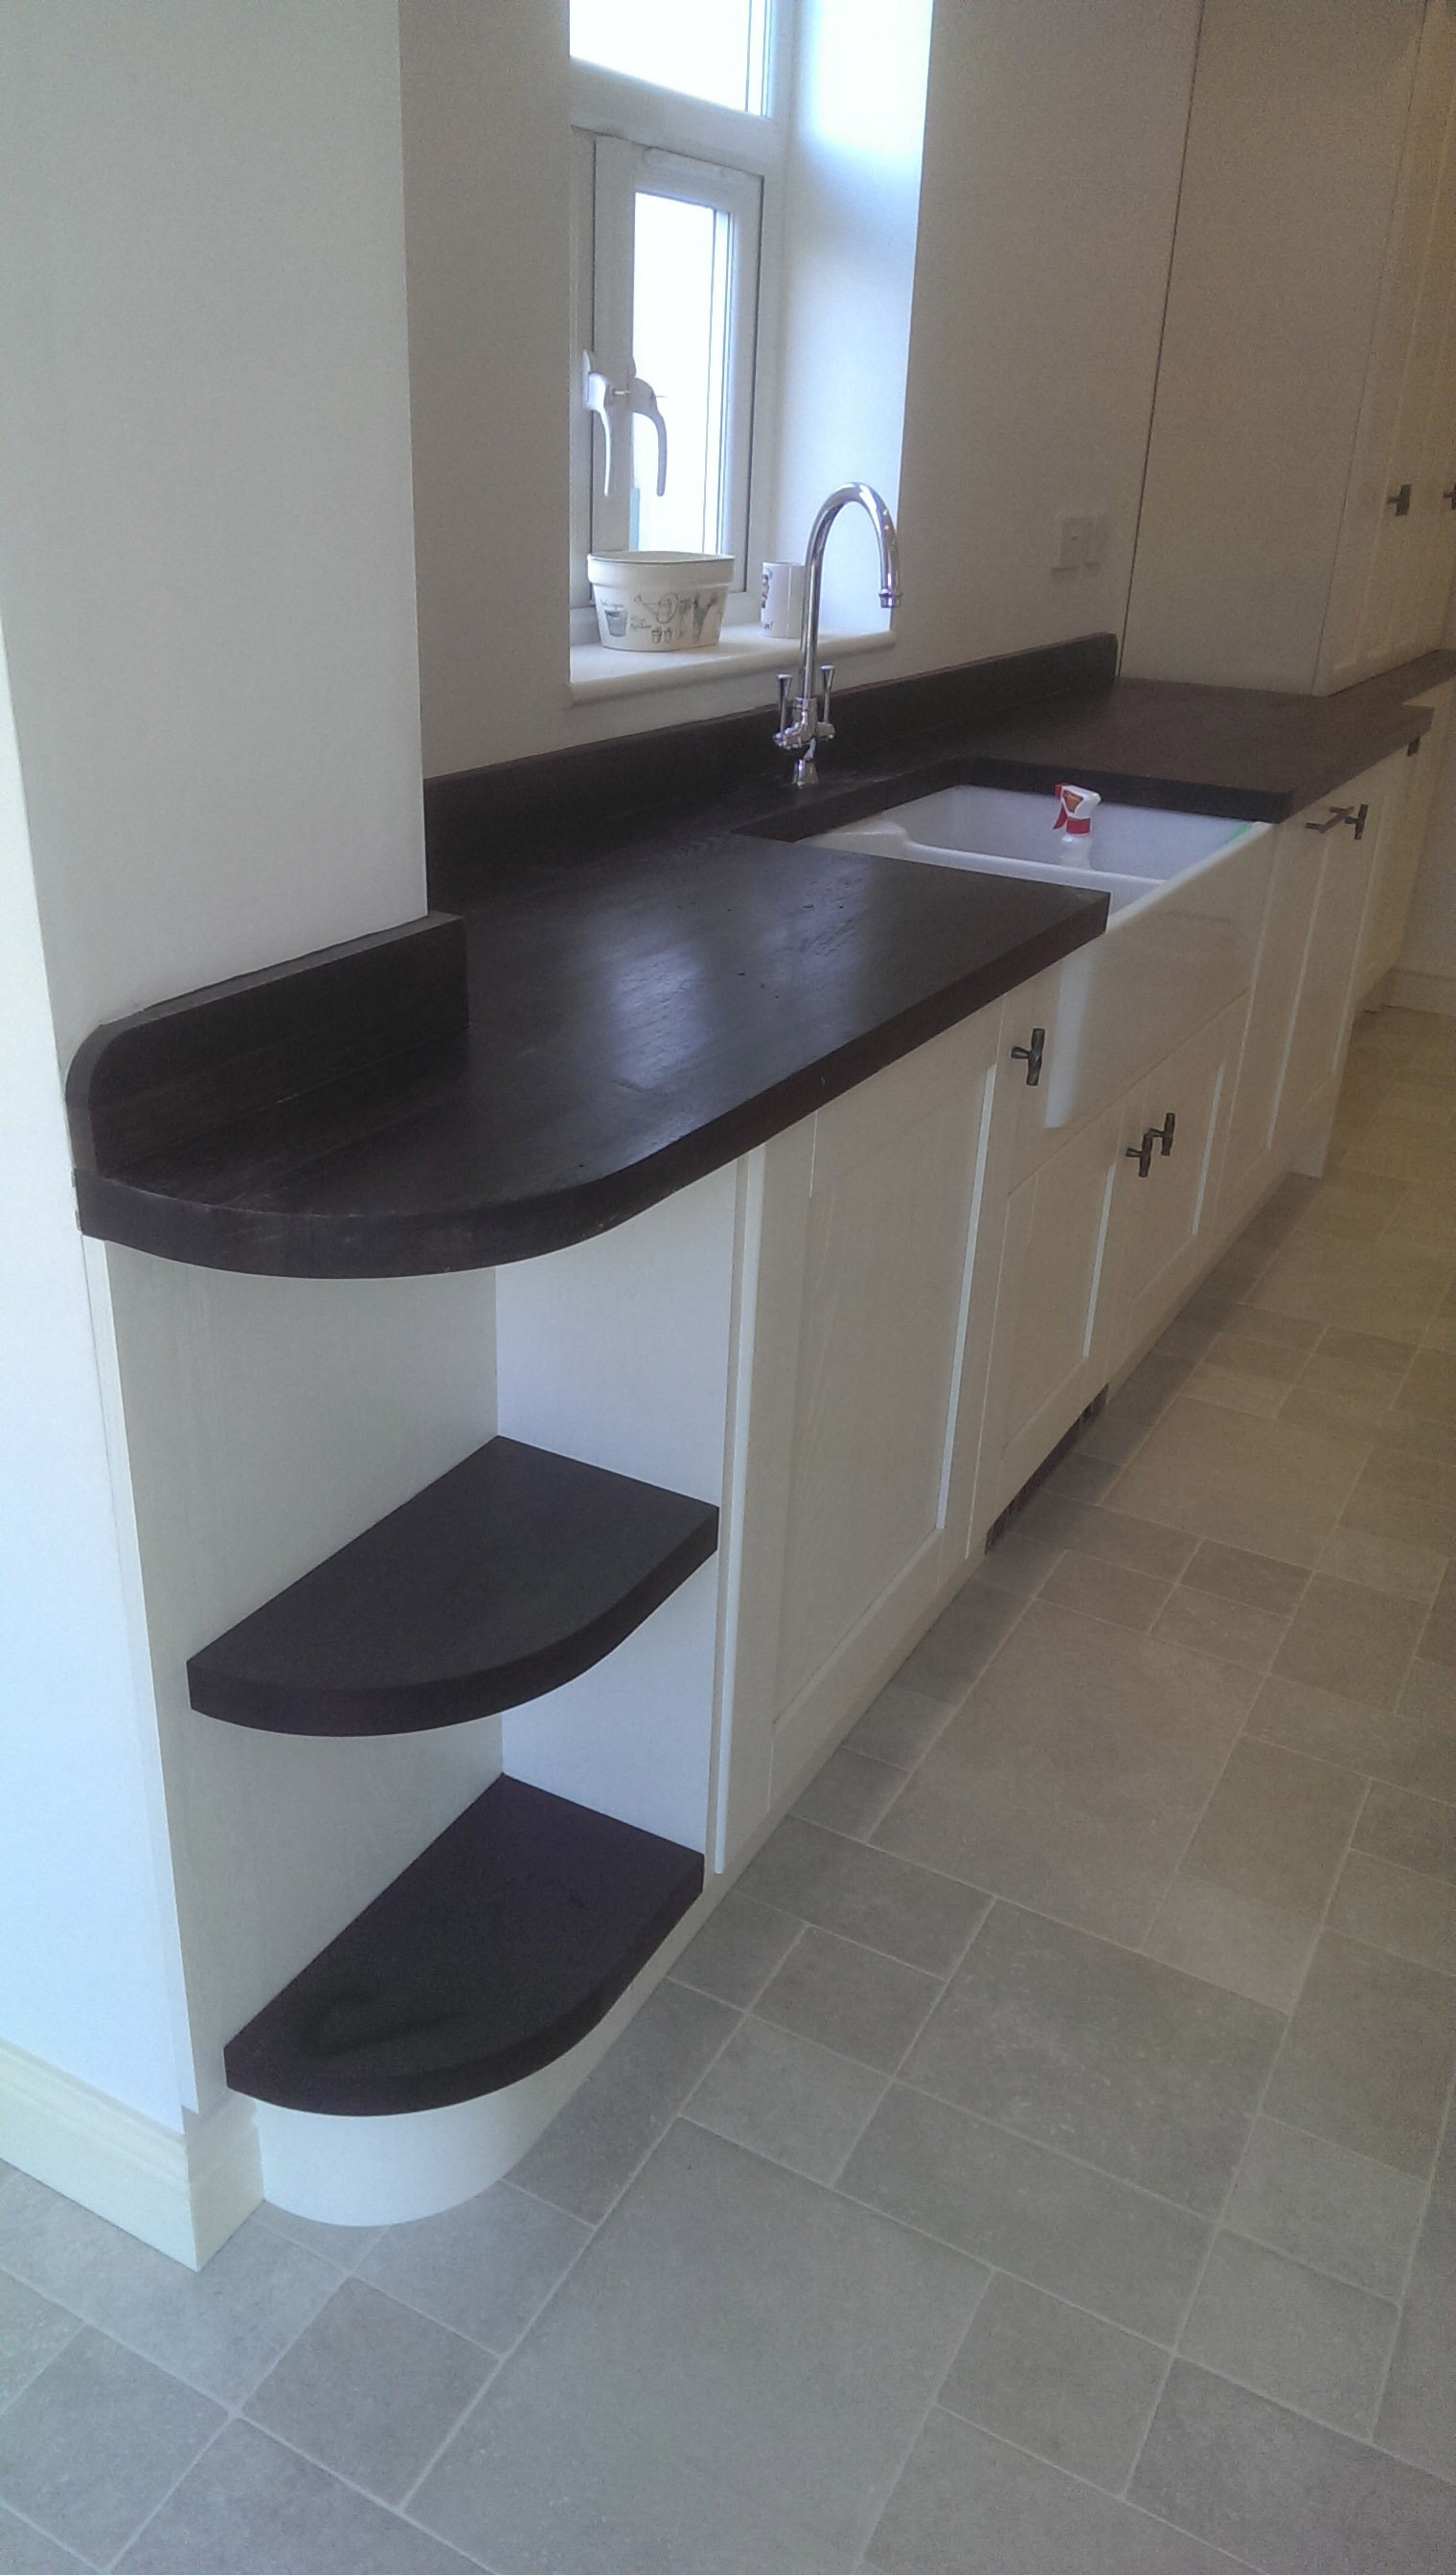 wooden worktop in the kitchen